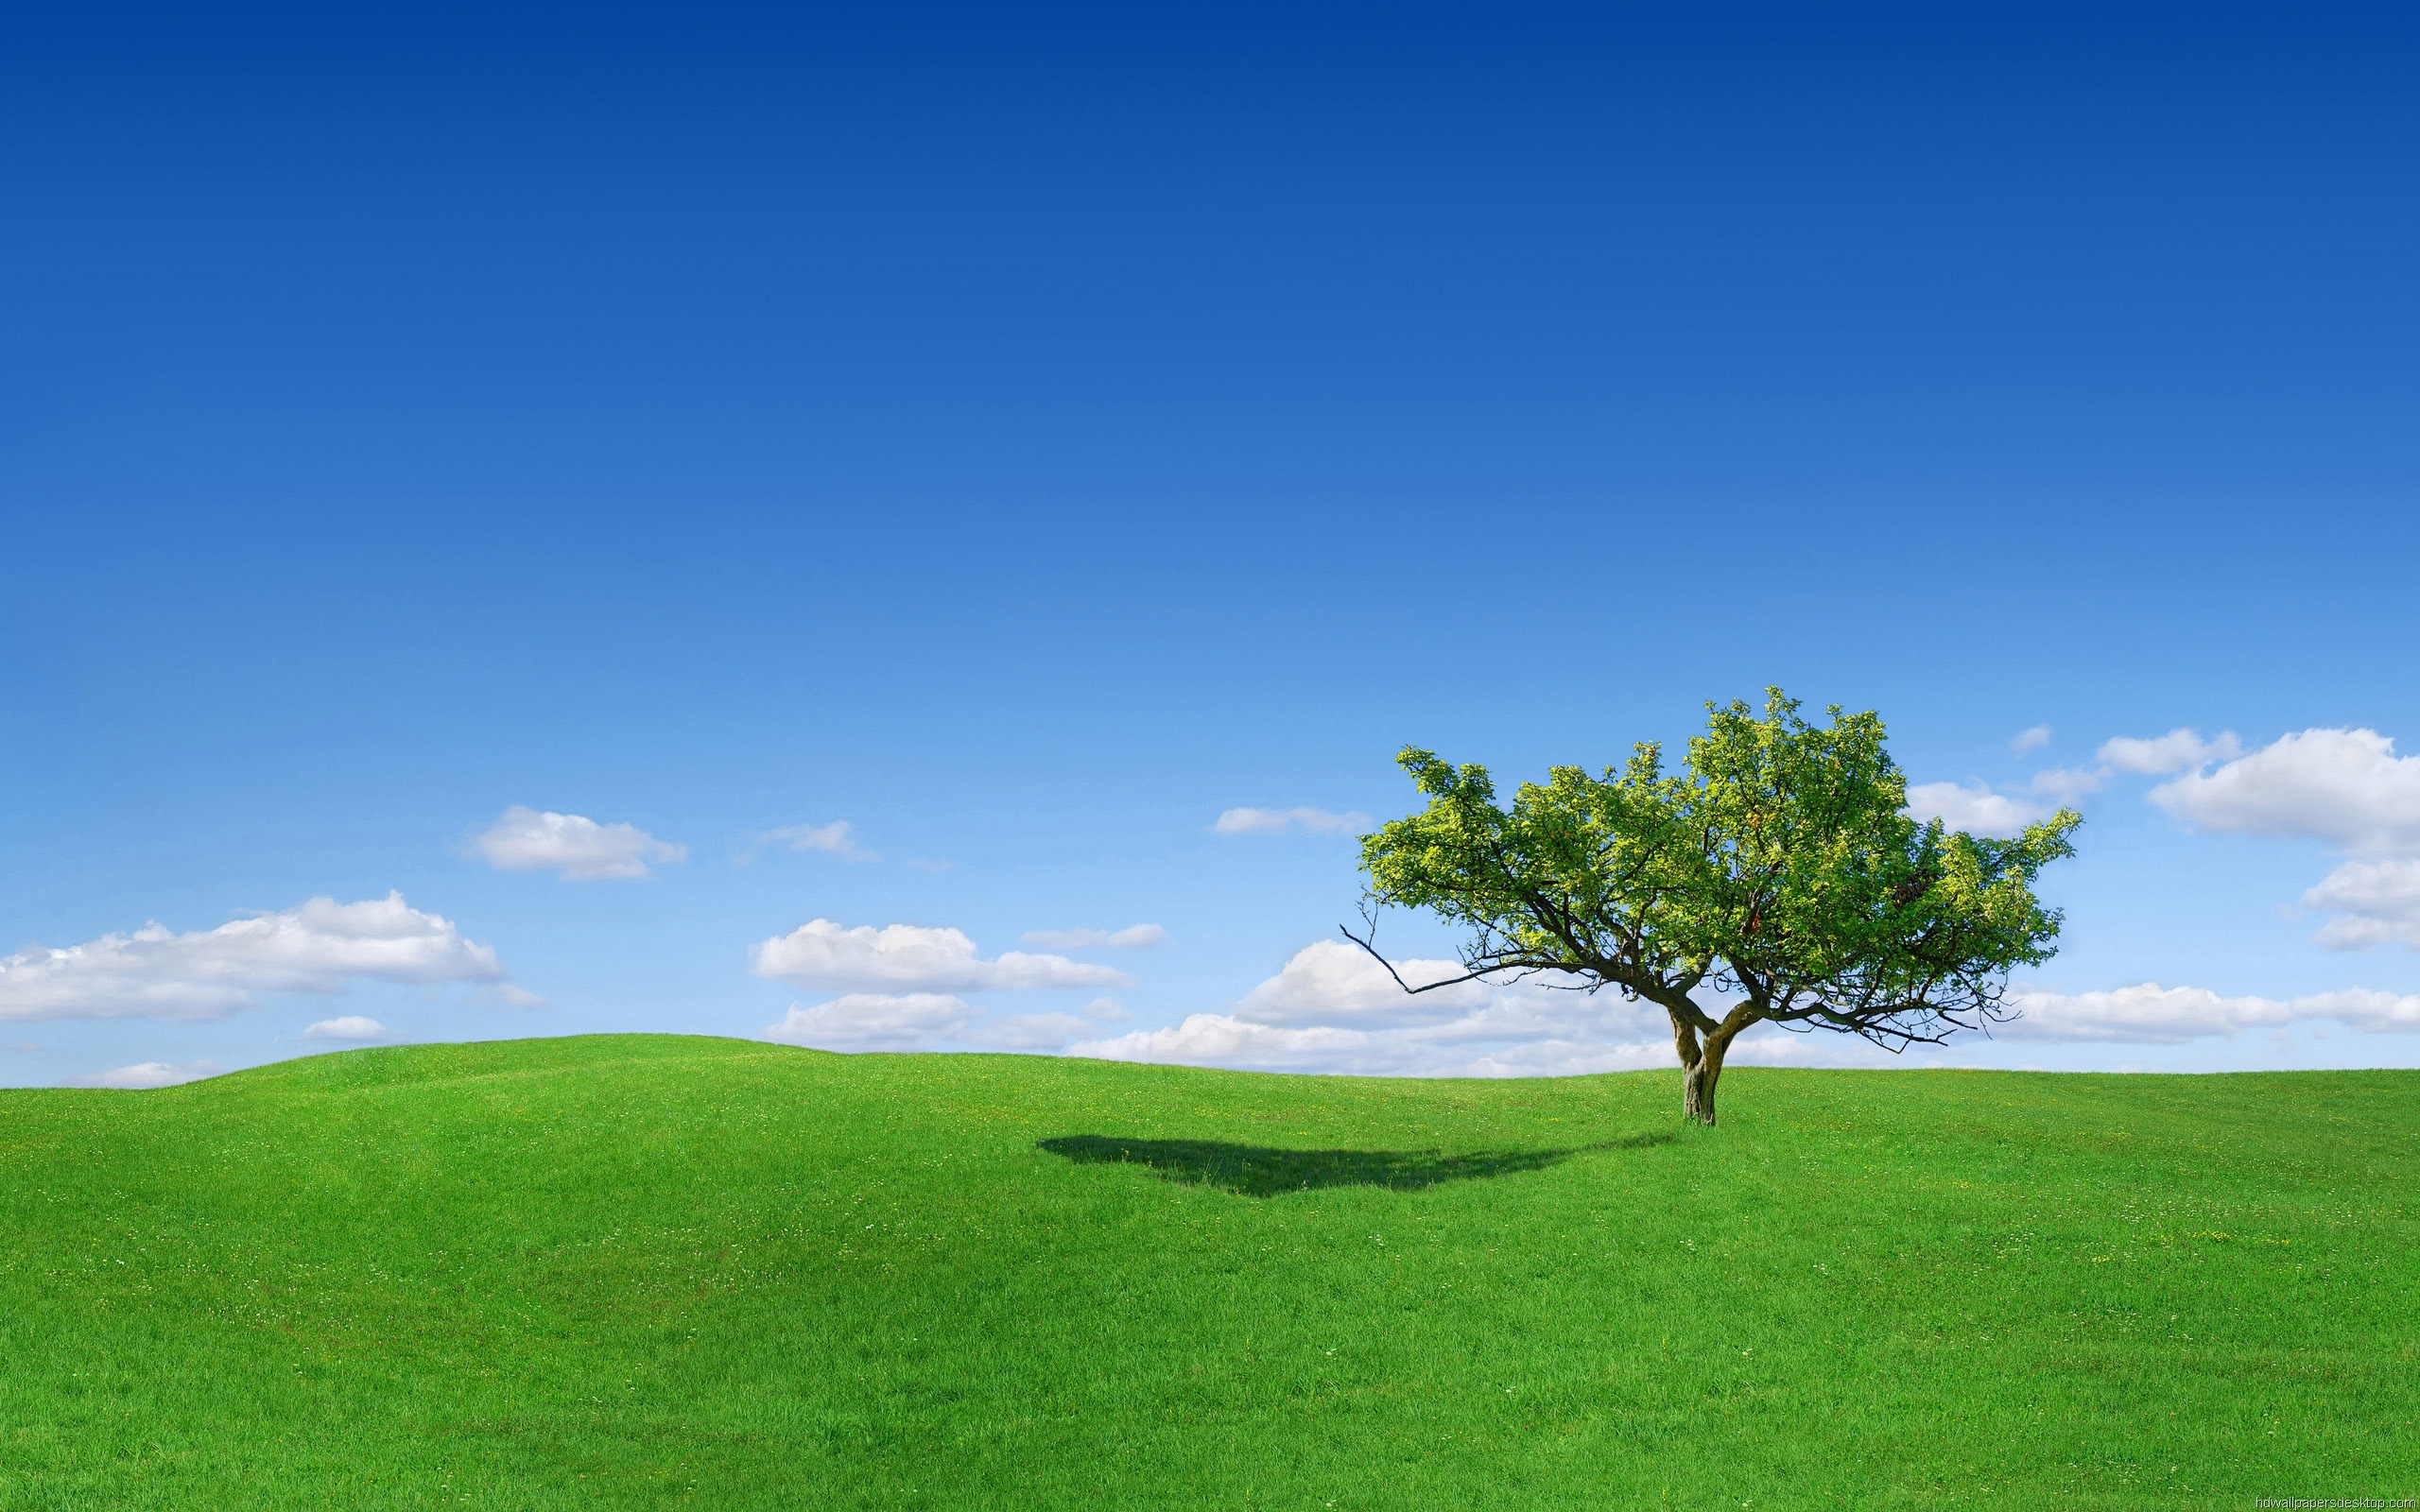 Free Download Landscape Wallpapers Hd Widescreen Desktop